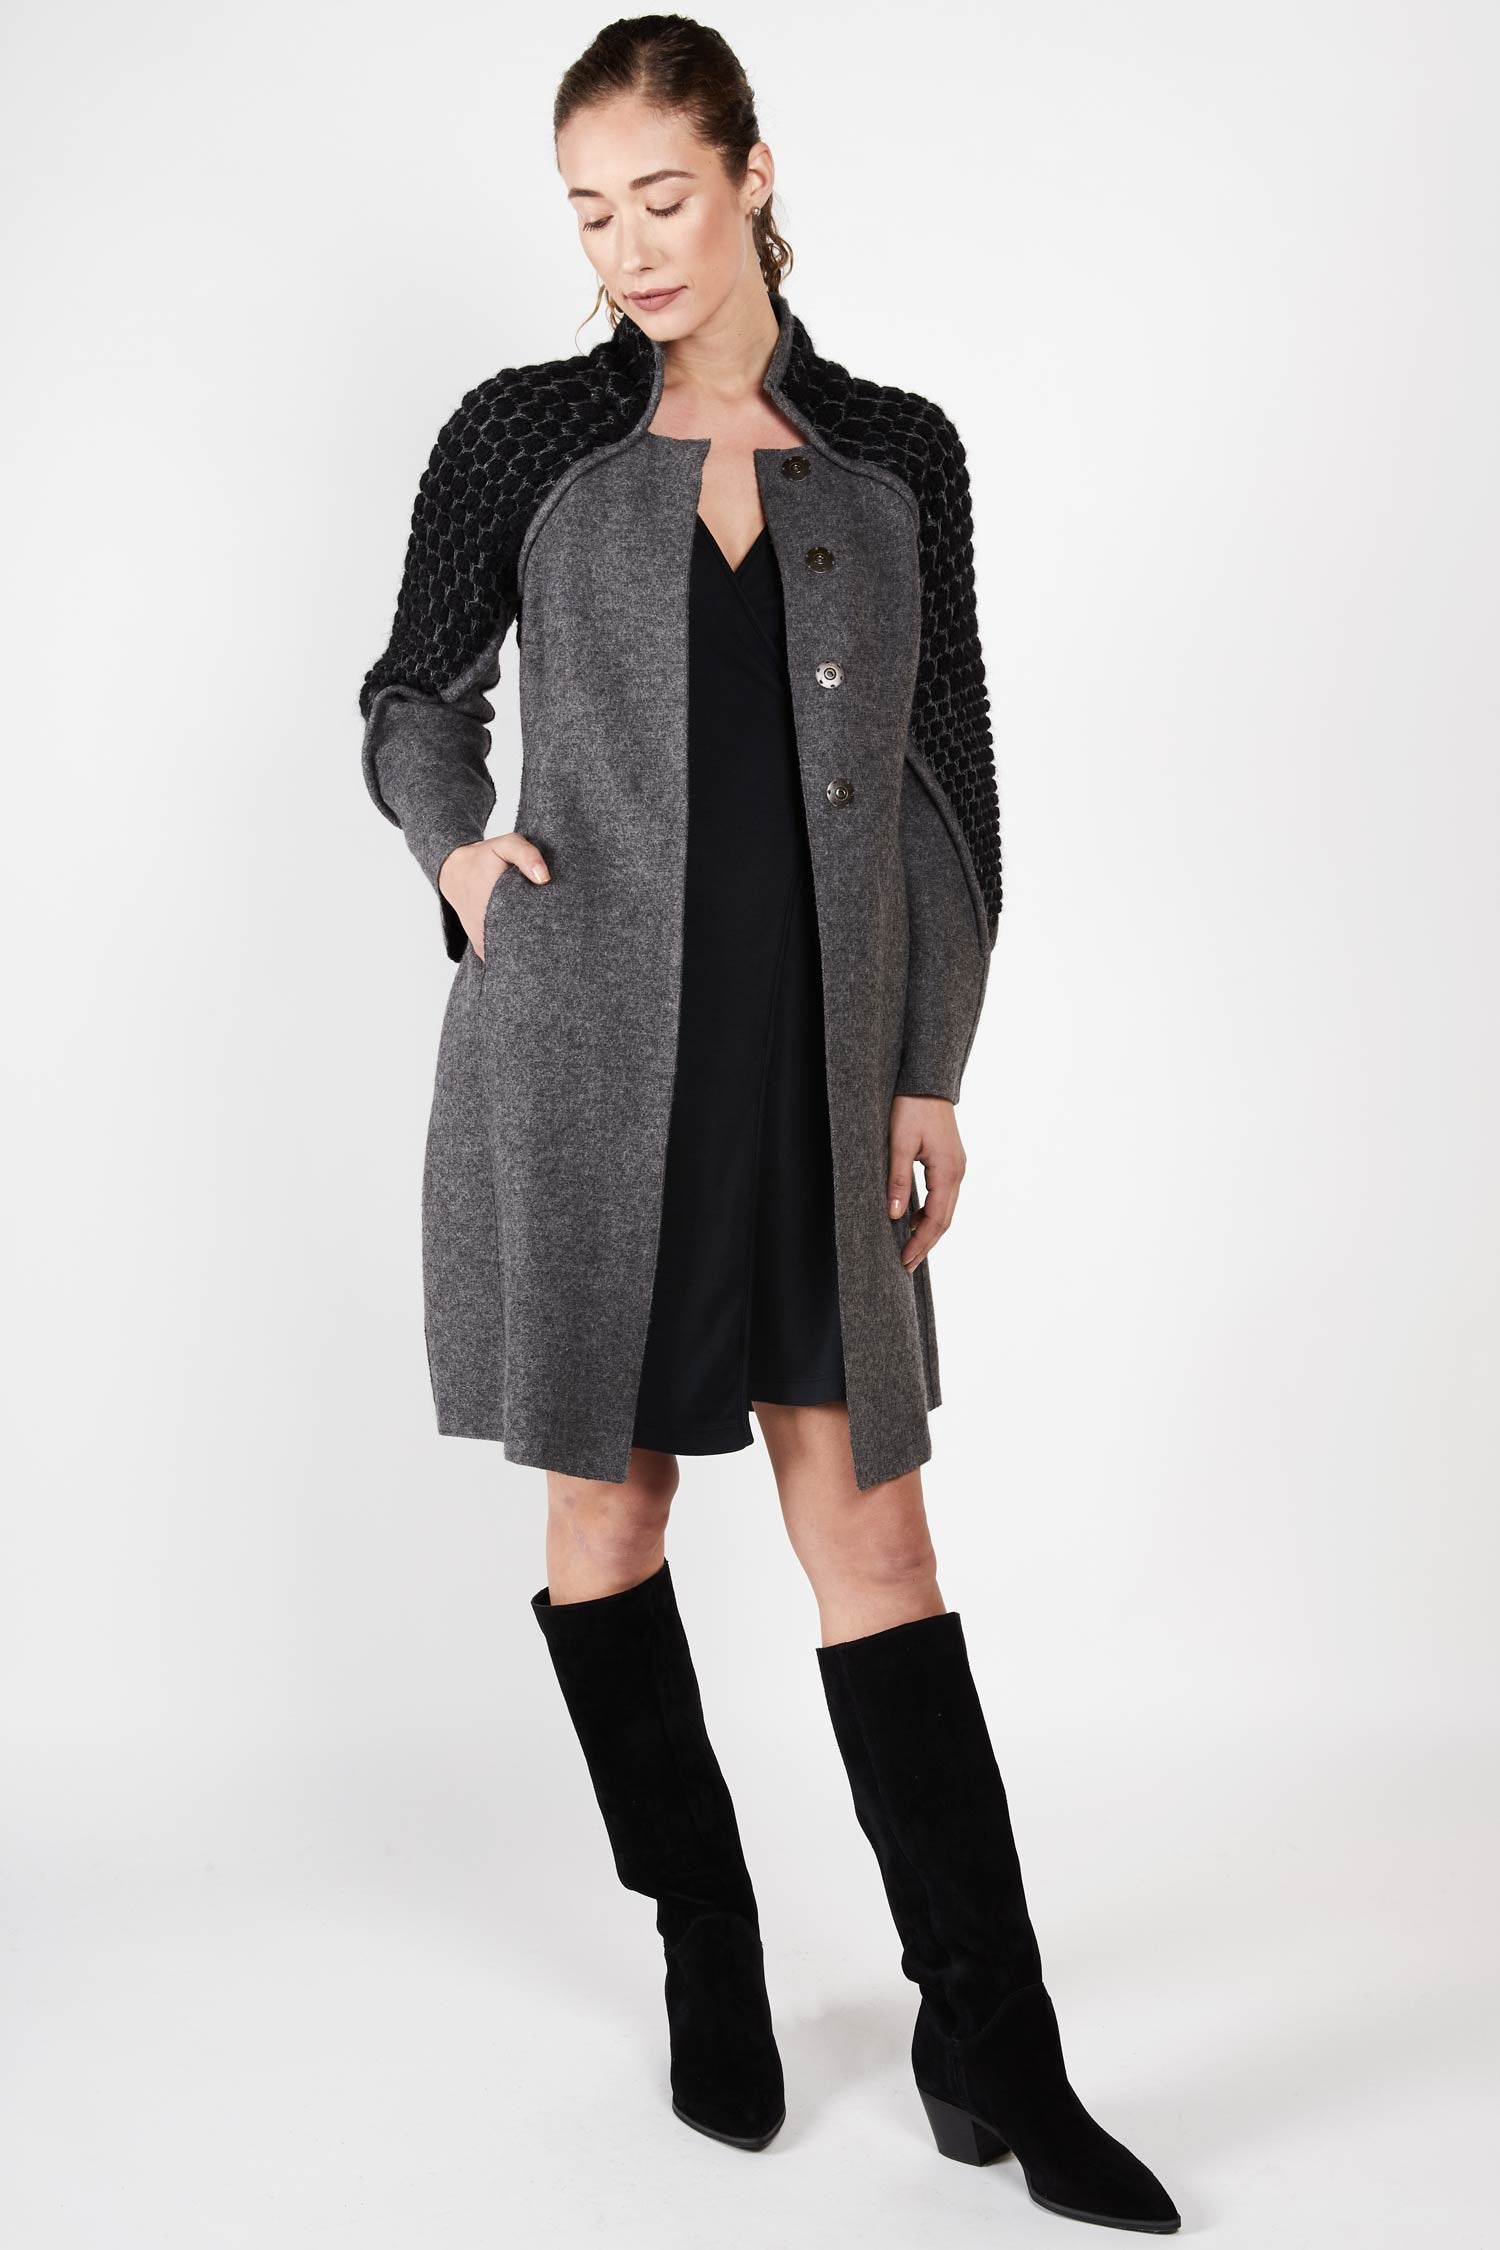 Knit and Boiled Alpaca Wool Coat